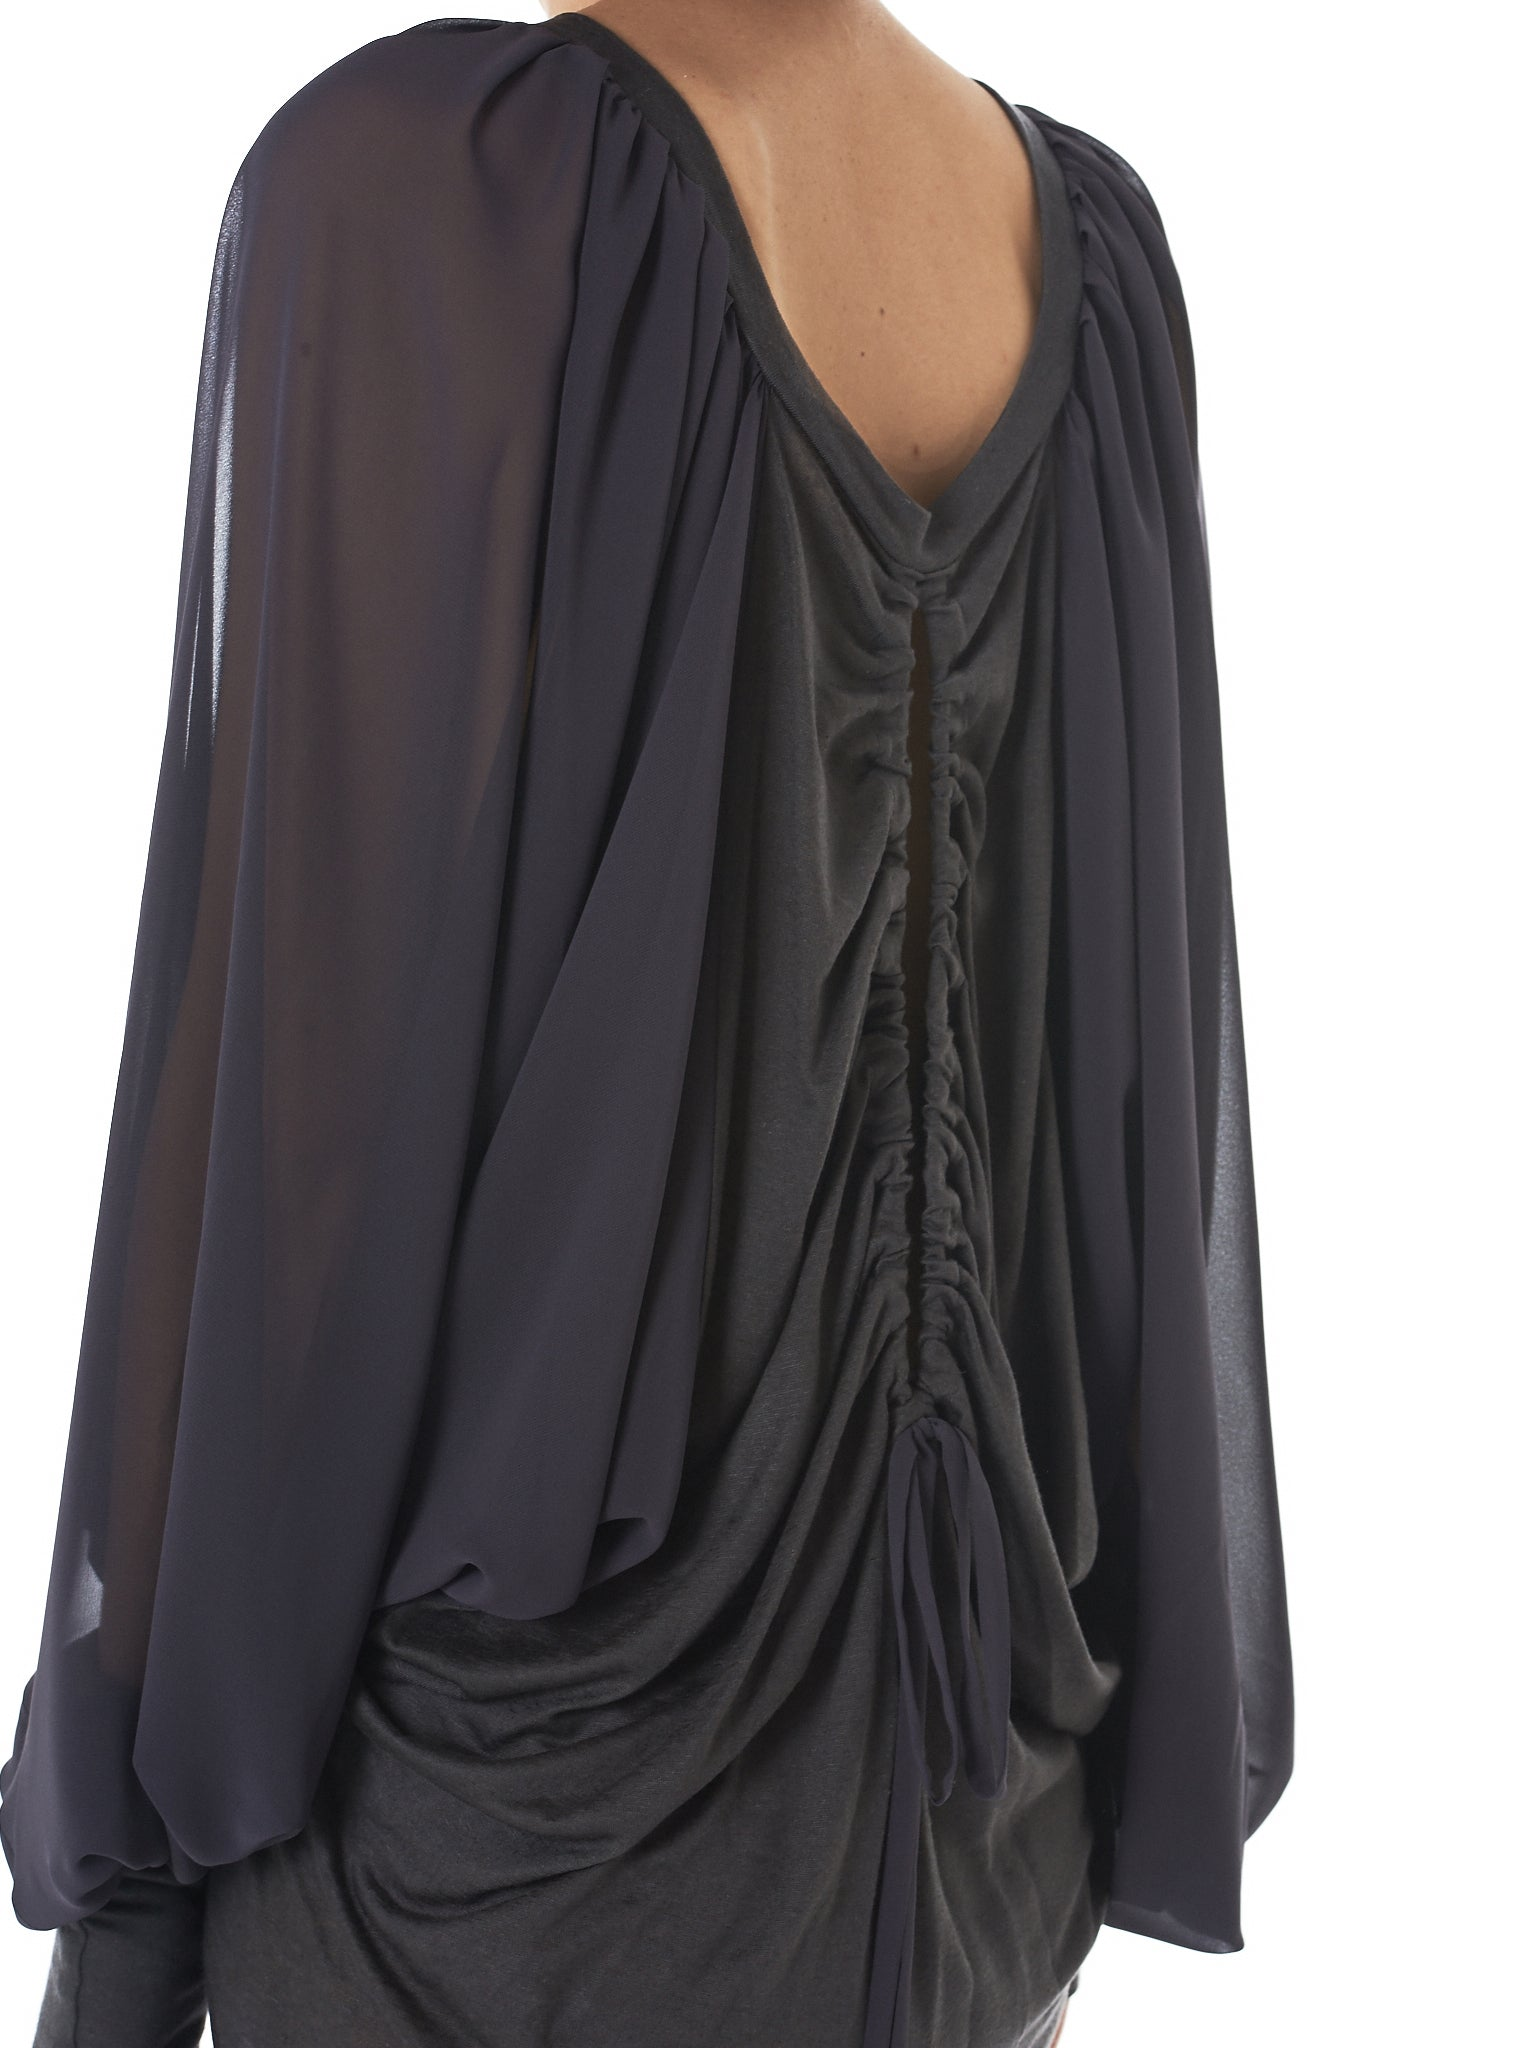 Draped Tencel Dress (GNS-JD133-D-GREY)